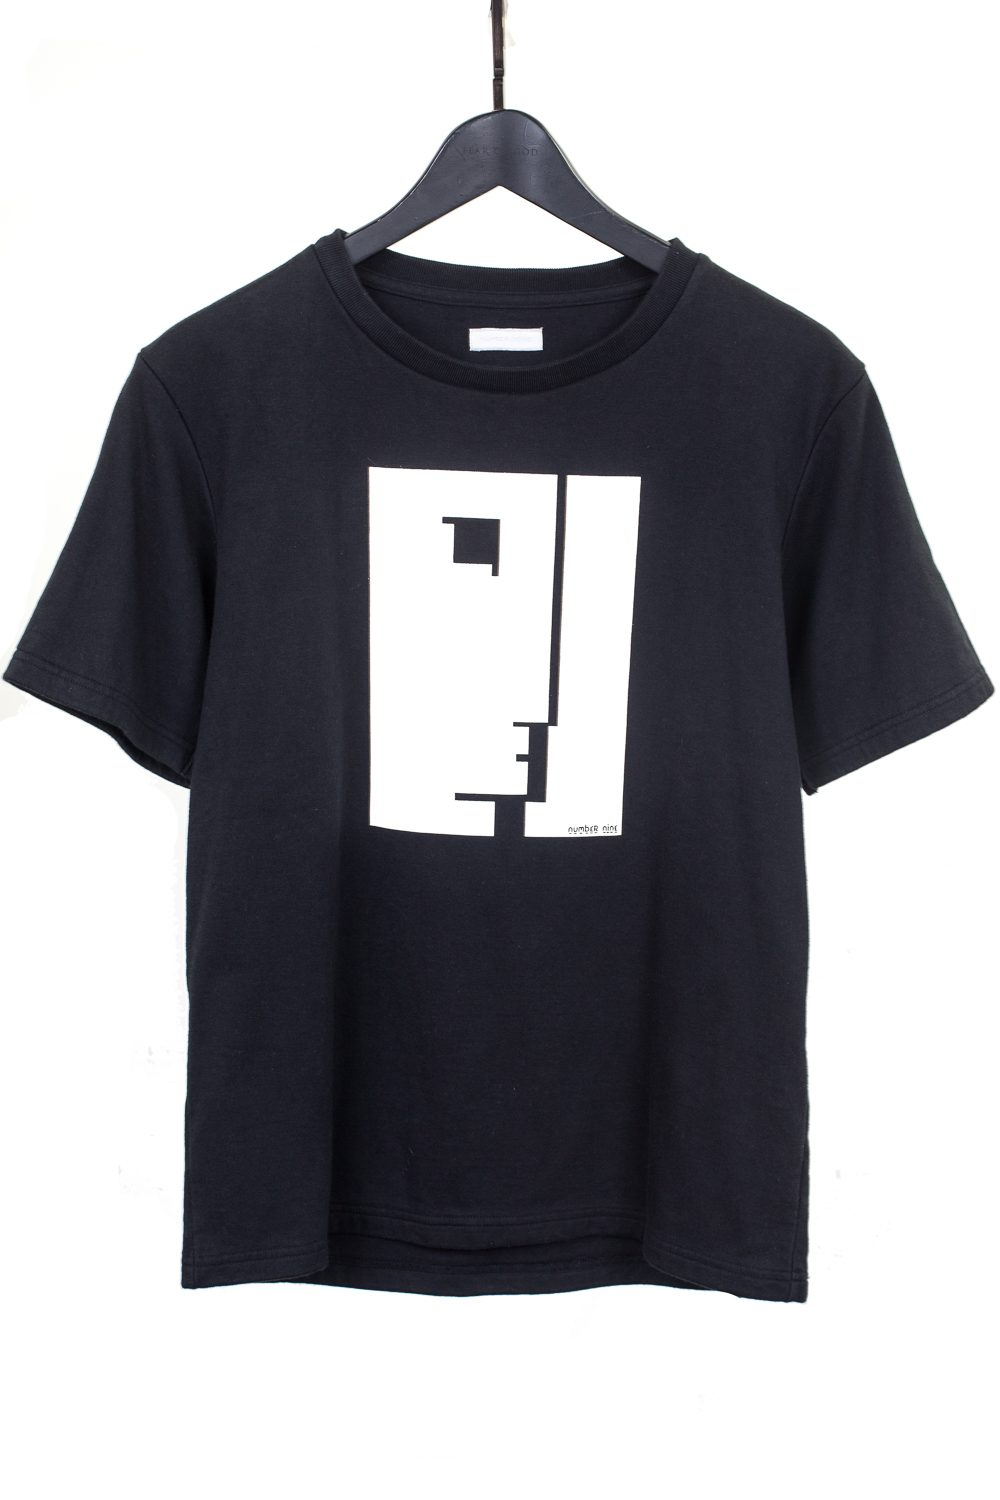 "AW01 ""Redisun"" Bauhaus Double Layered Tee"